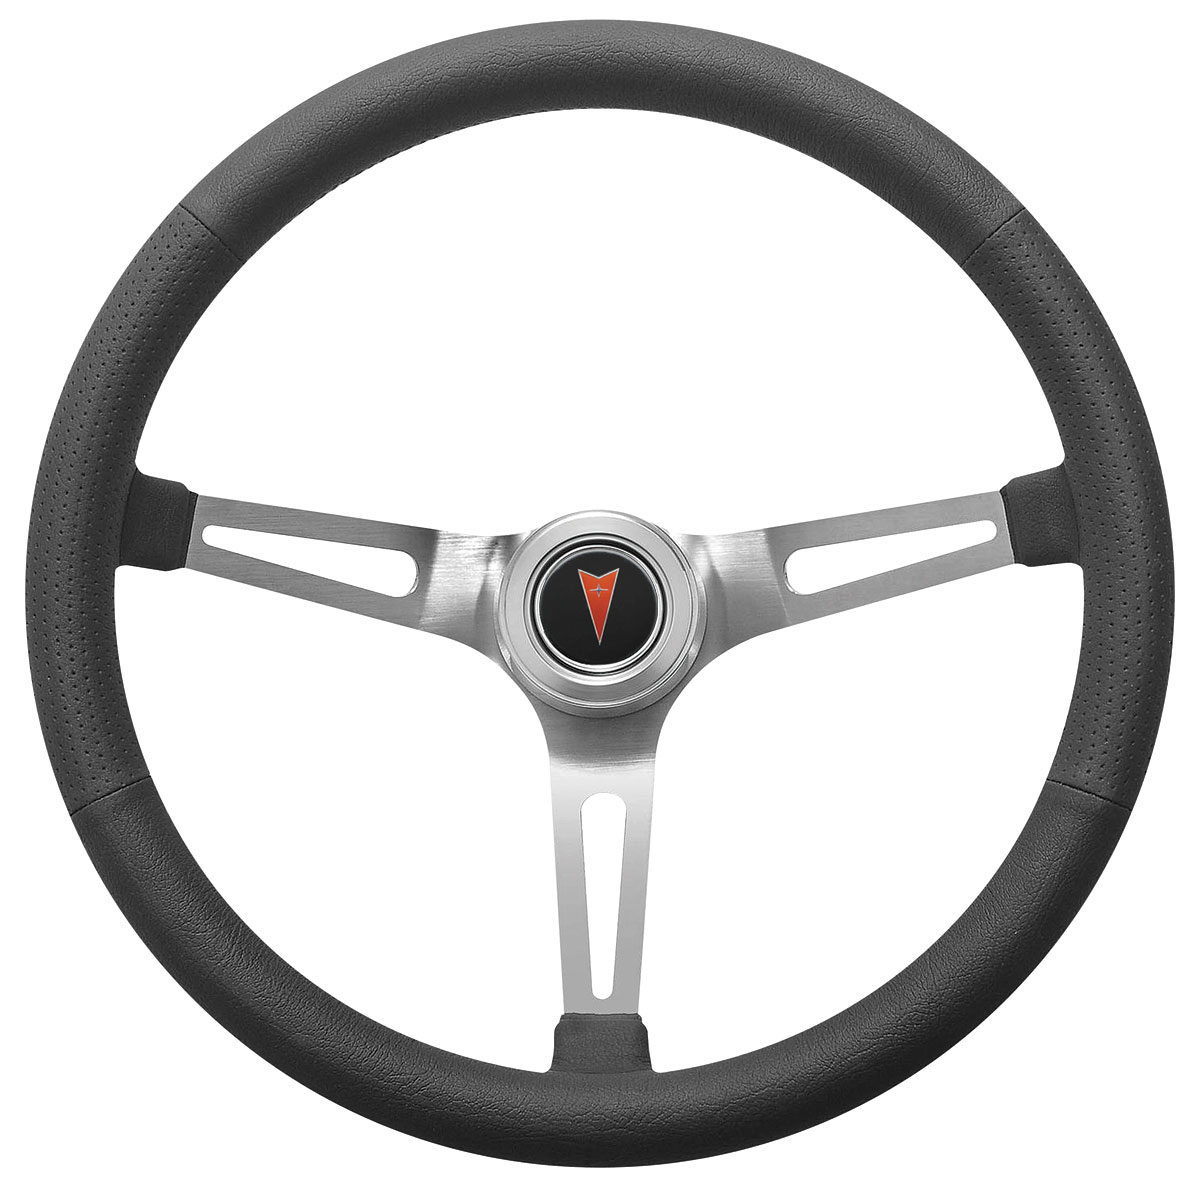 Photo of Steering Wheel Kit, Retro Wheel With Slots Hi-Rise Cap - Polished with arrowhead center, late mount